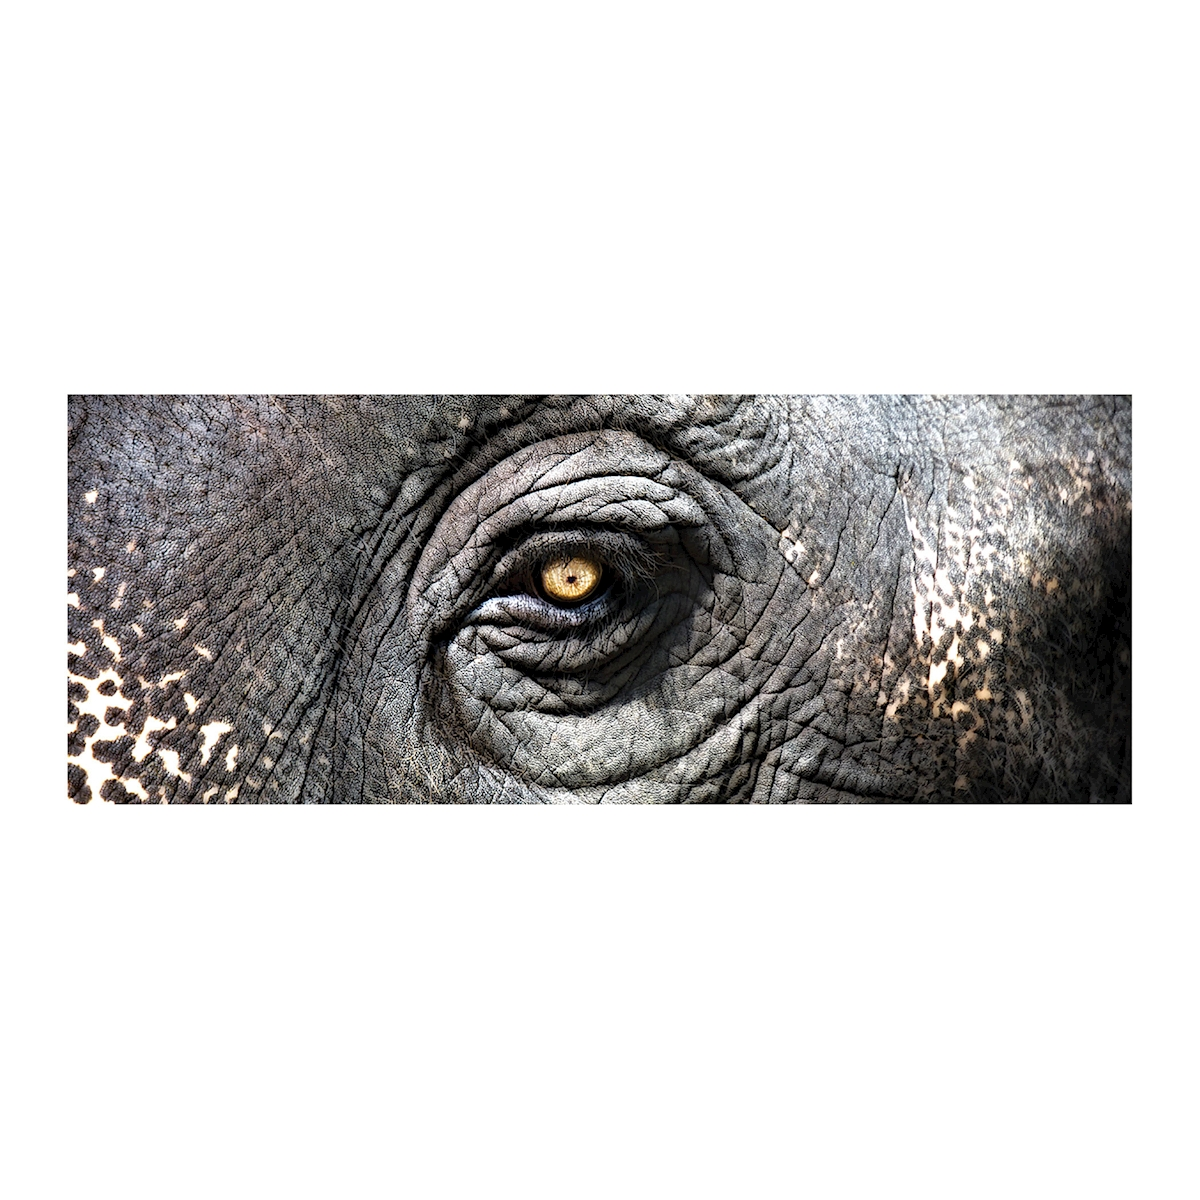 Exclusive Gianni Rusconi Print On Canvas - image 1 of 1